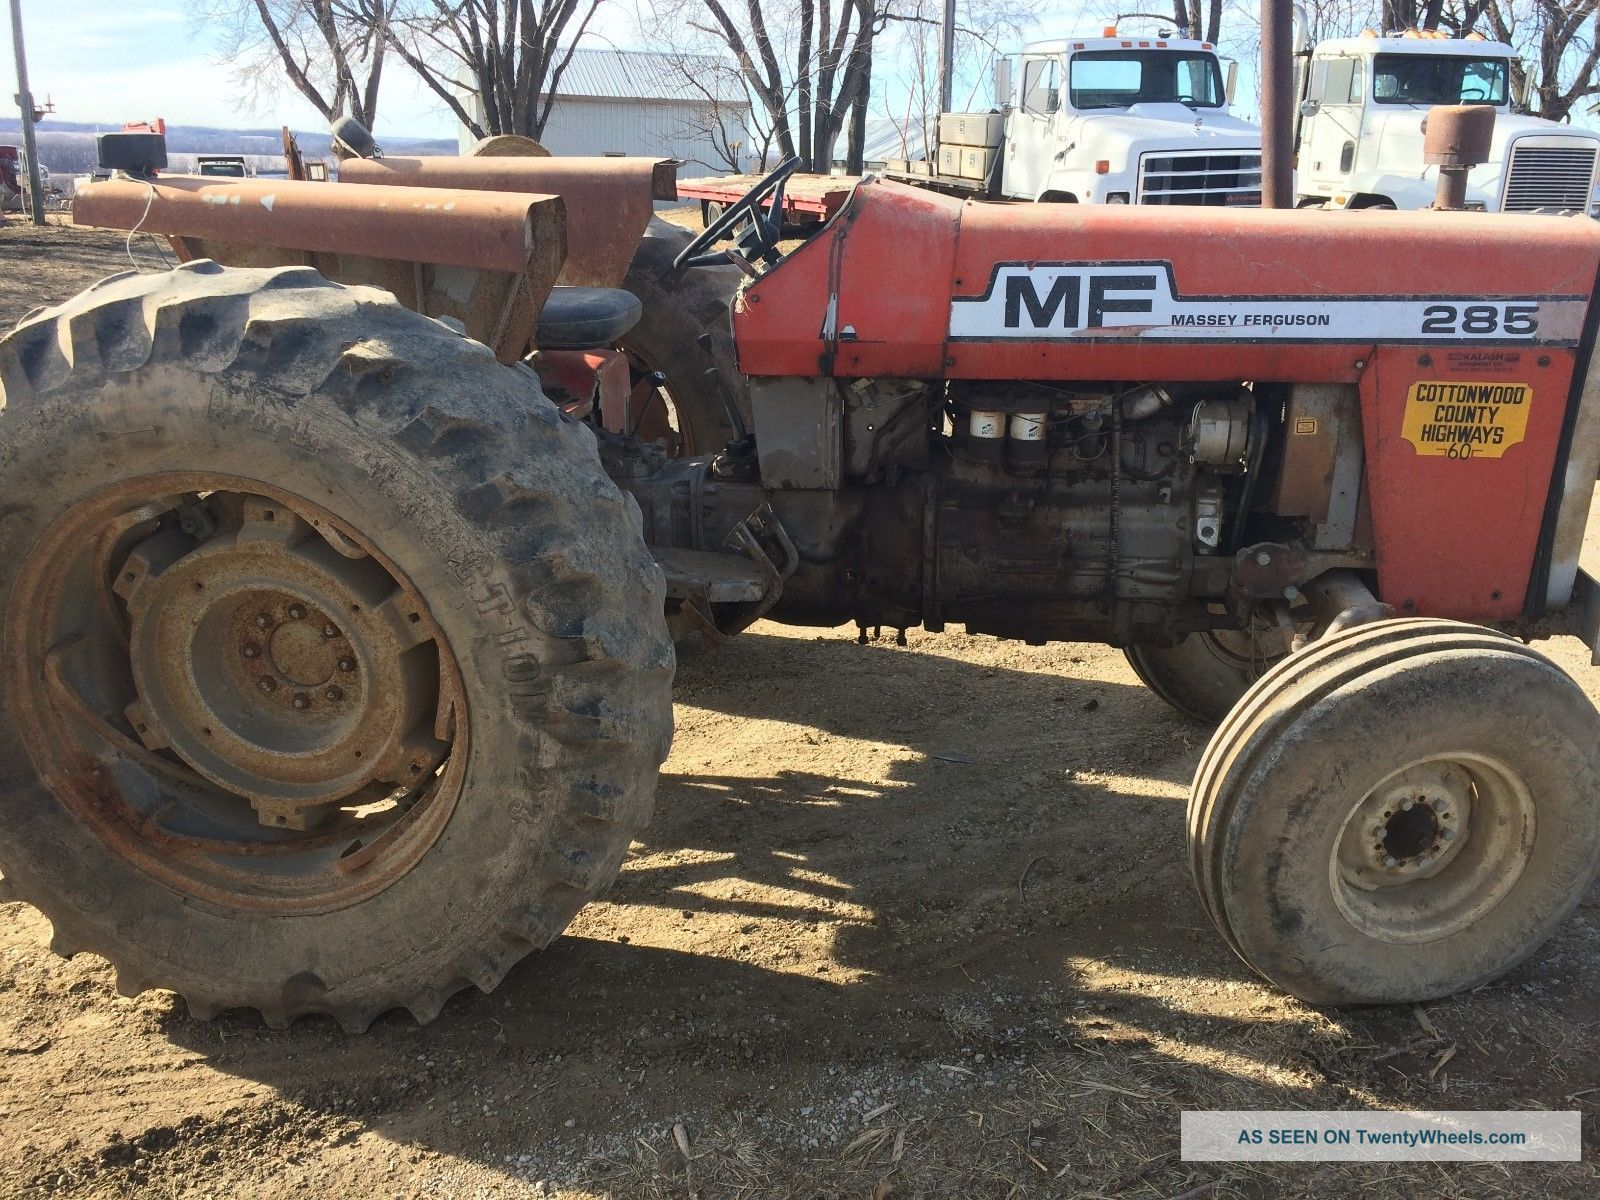 Massey Ferguson Tractor Troubleshooting : Massey ferguson repair or parts